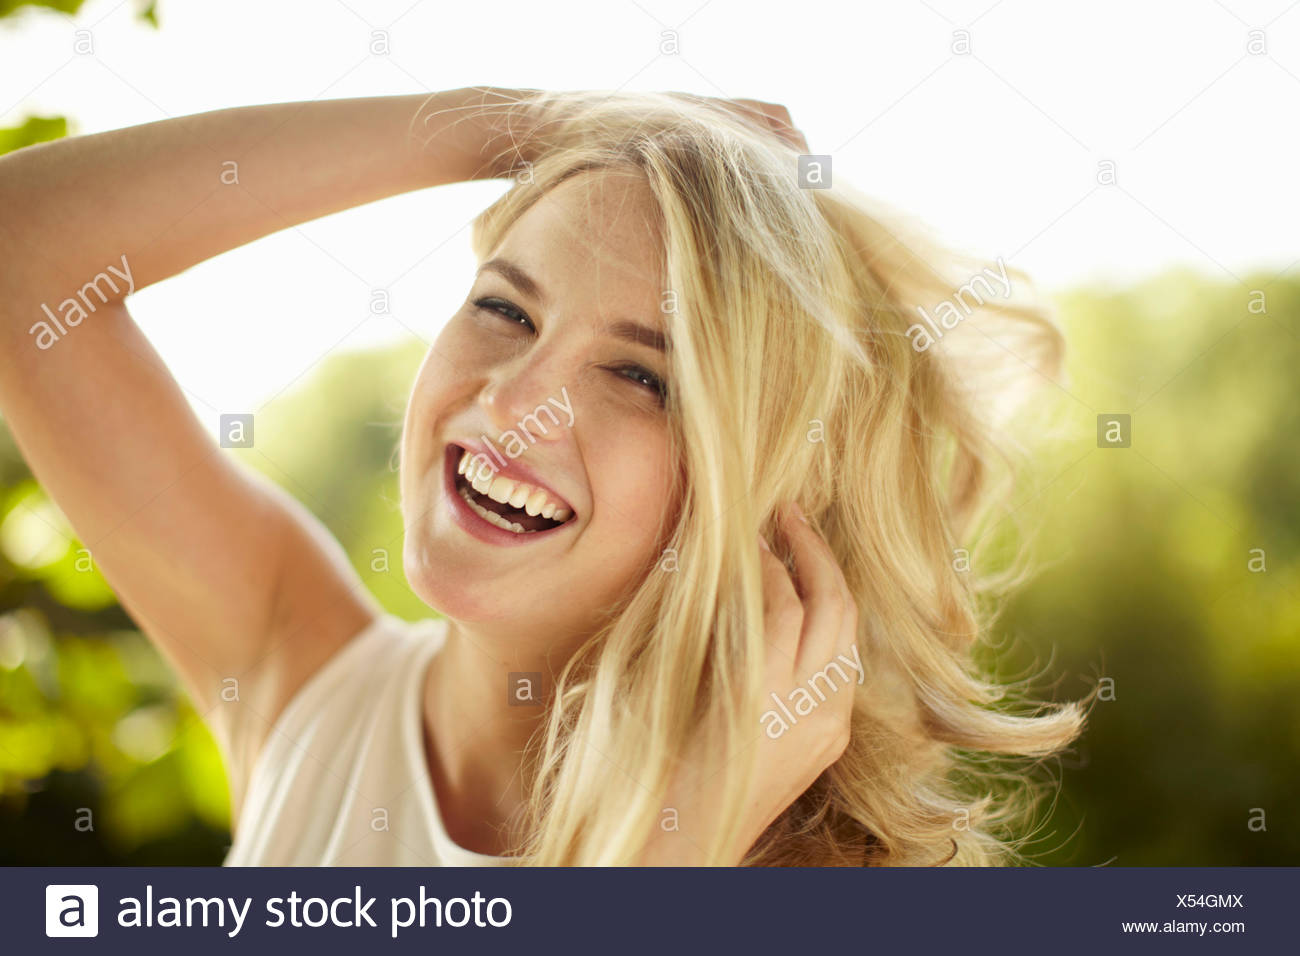 Young woman laughing with hands in her hair in park - Stock Image